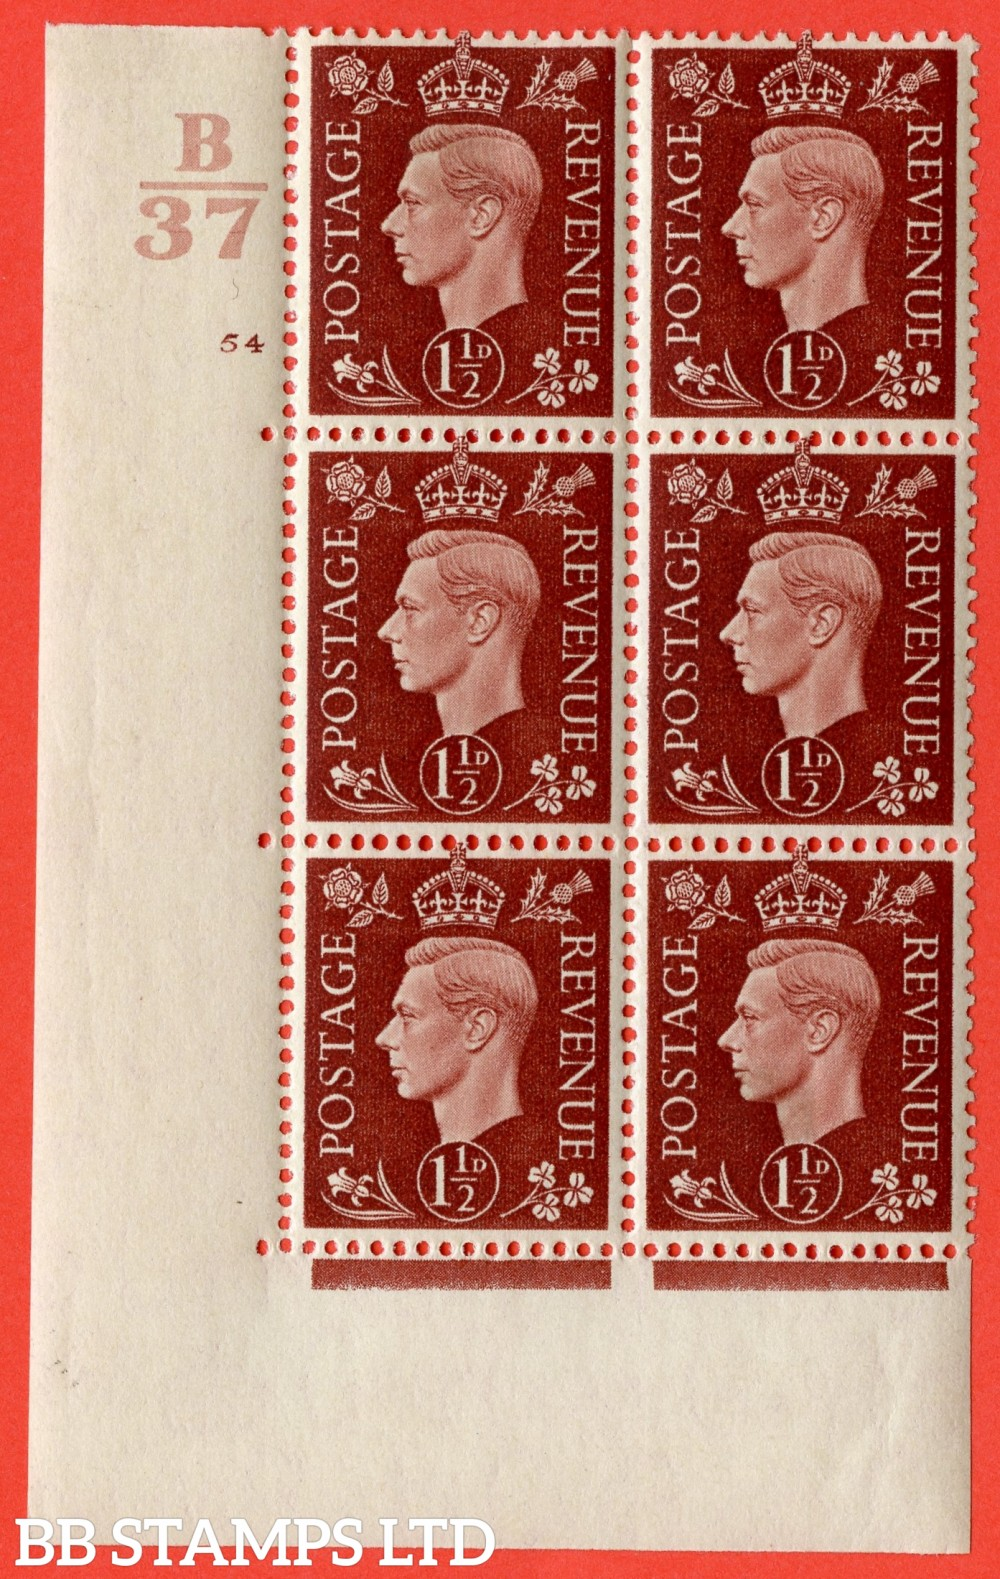 """SG. 464. Q7. 1½d Red-Brown. A fine lightly mounted mint """" Control B37 cylinder 54 no dot """" control block of 6 with perf type 5 E/I. with marginal rule."""